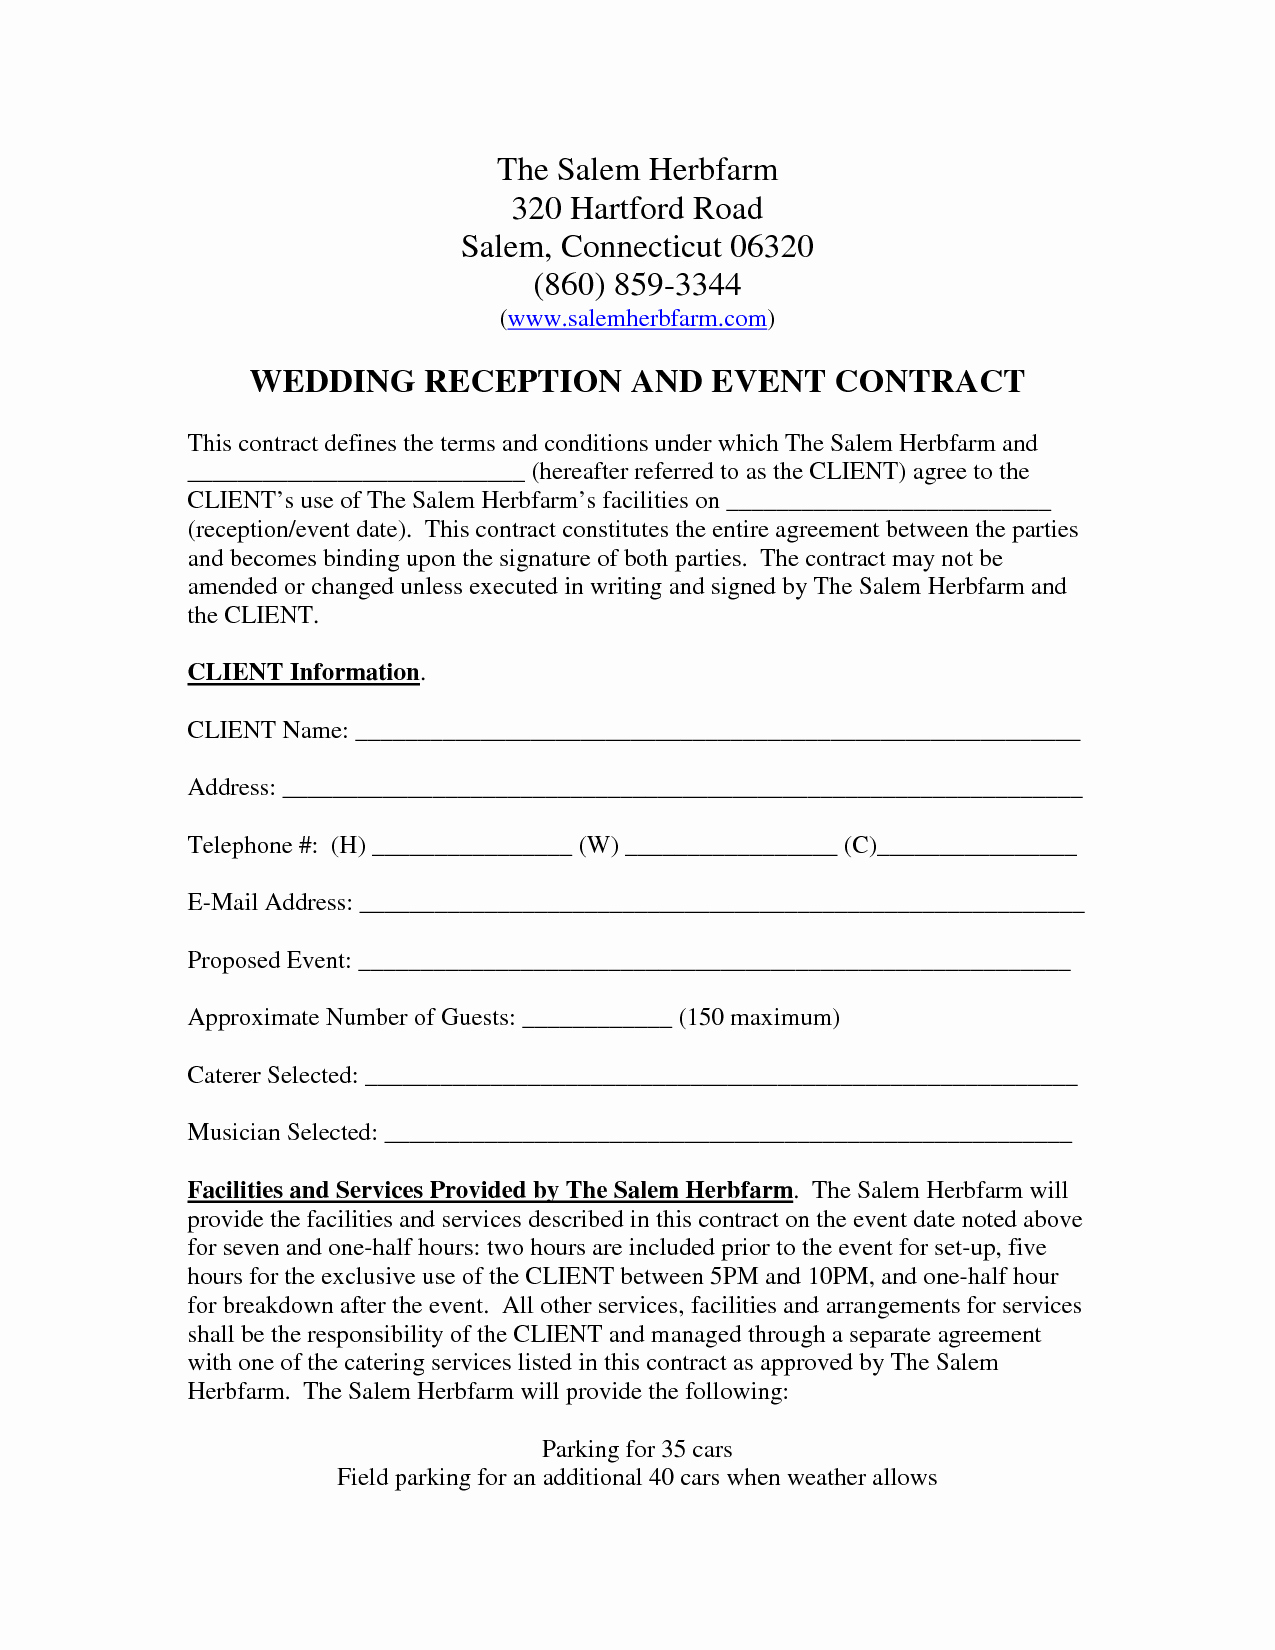 Wedding Venue Contract Template Lovely Wedding Venue Contract Template – Emmamcintyrephotography